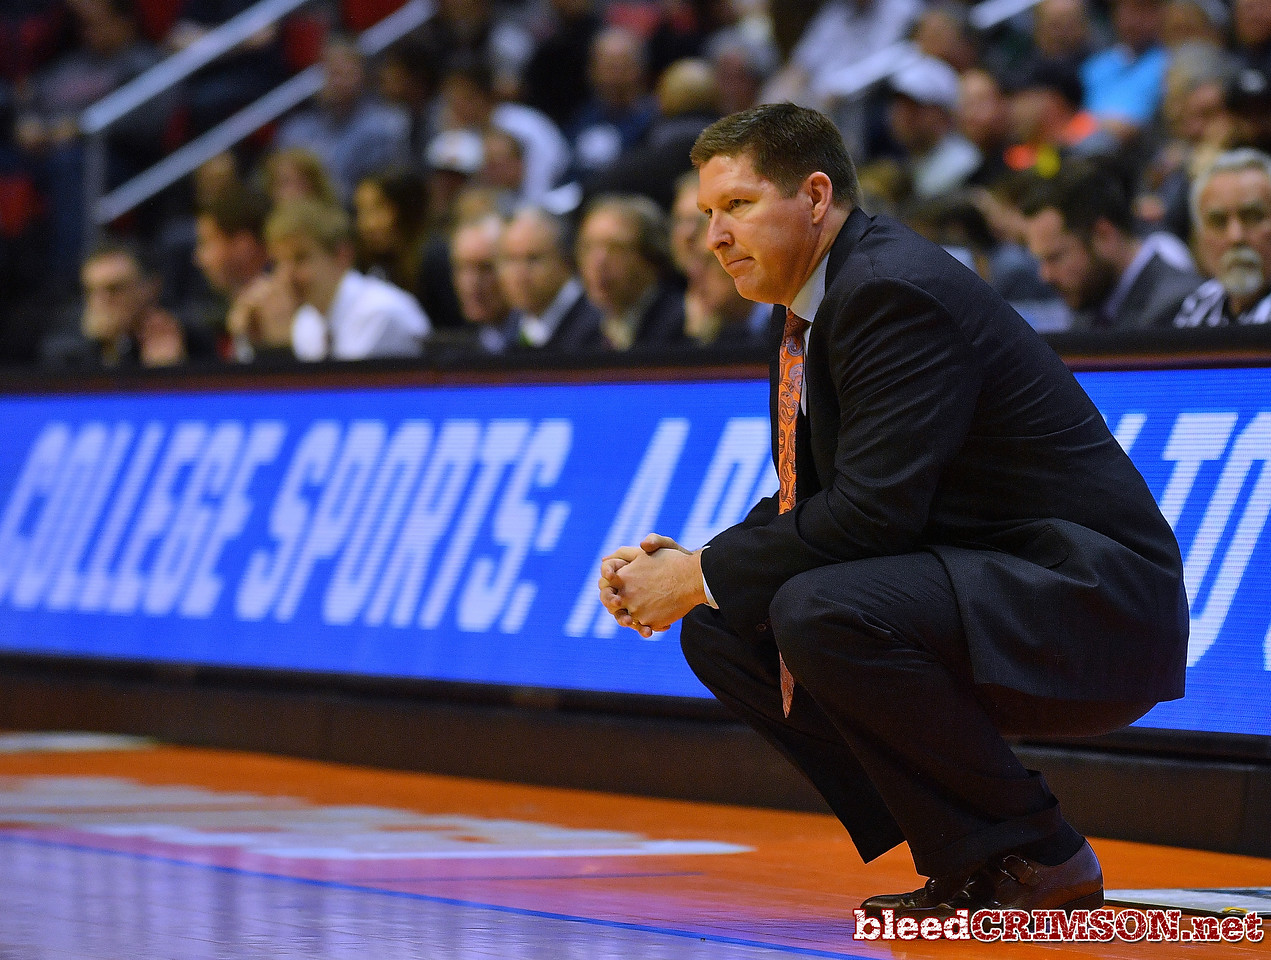 SAN DIEGO, CA - MARCH 16:  Head coach Brad Brownell of the Clemson Tigers looks on during a first round game of the Men's NCAA Basketball Tournament against the New Mexico State Aggies at Viejas Arena in San Diego, California. Clemson won 79-68.  (Photo by Sam Wasson)